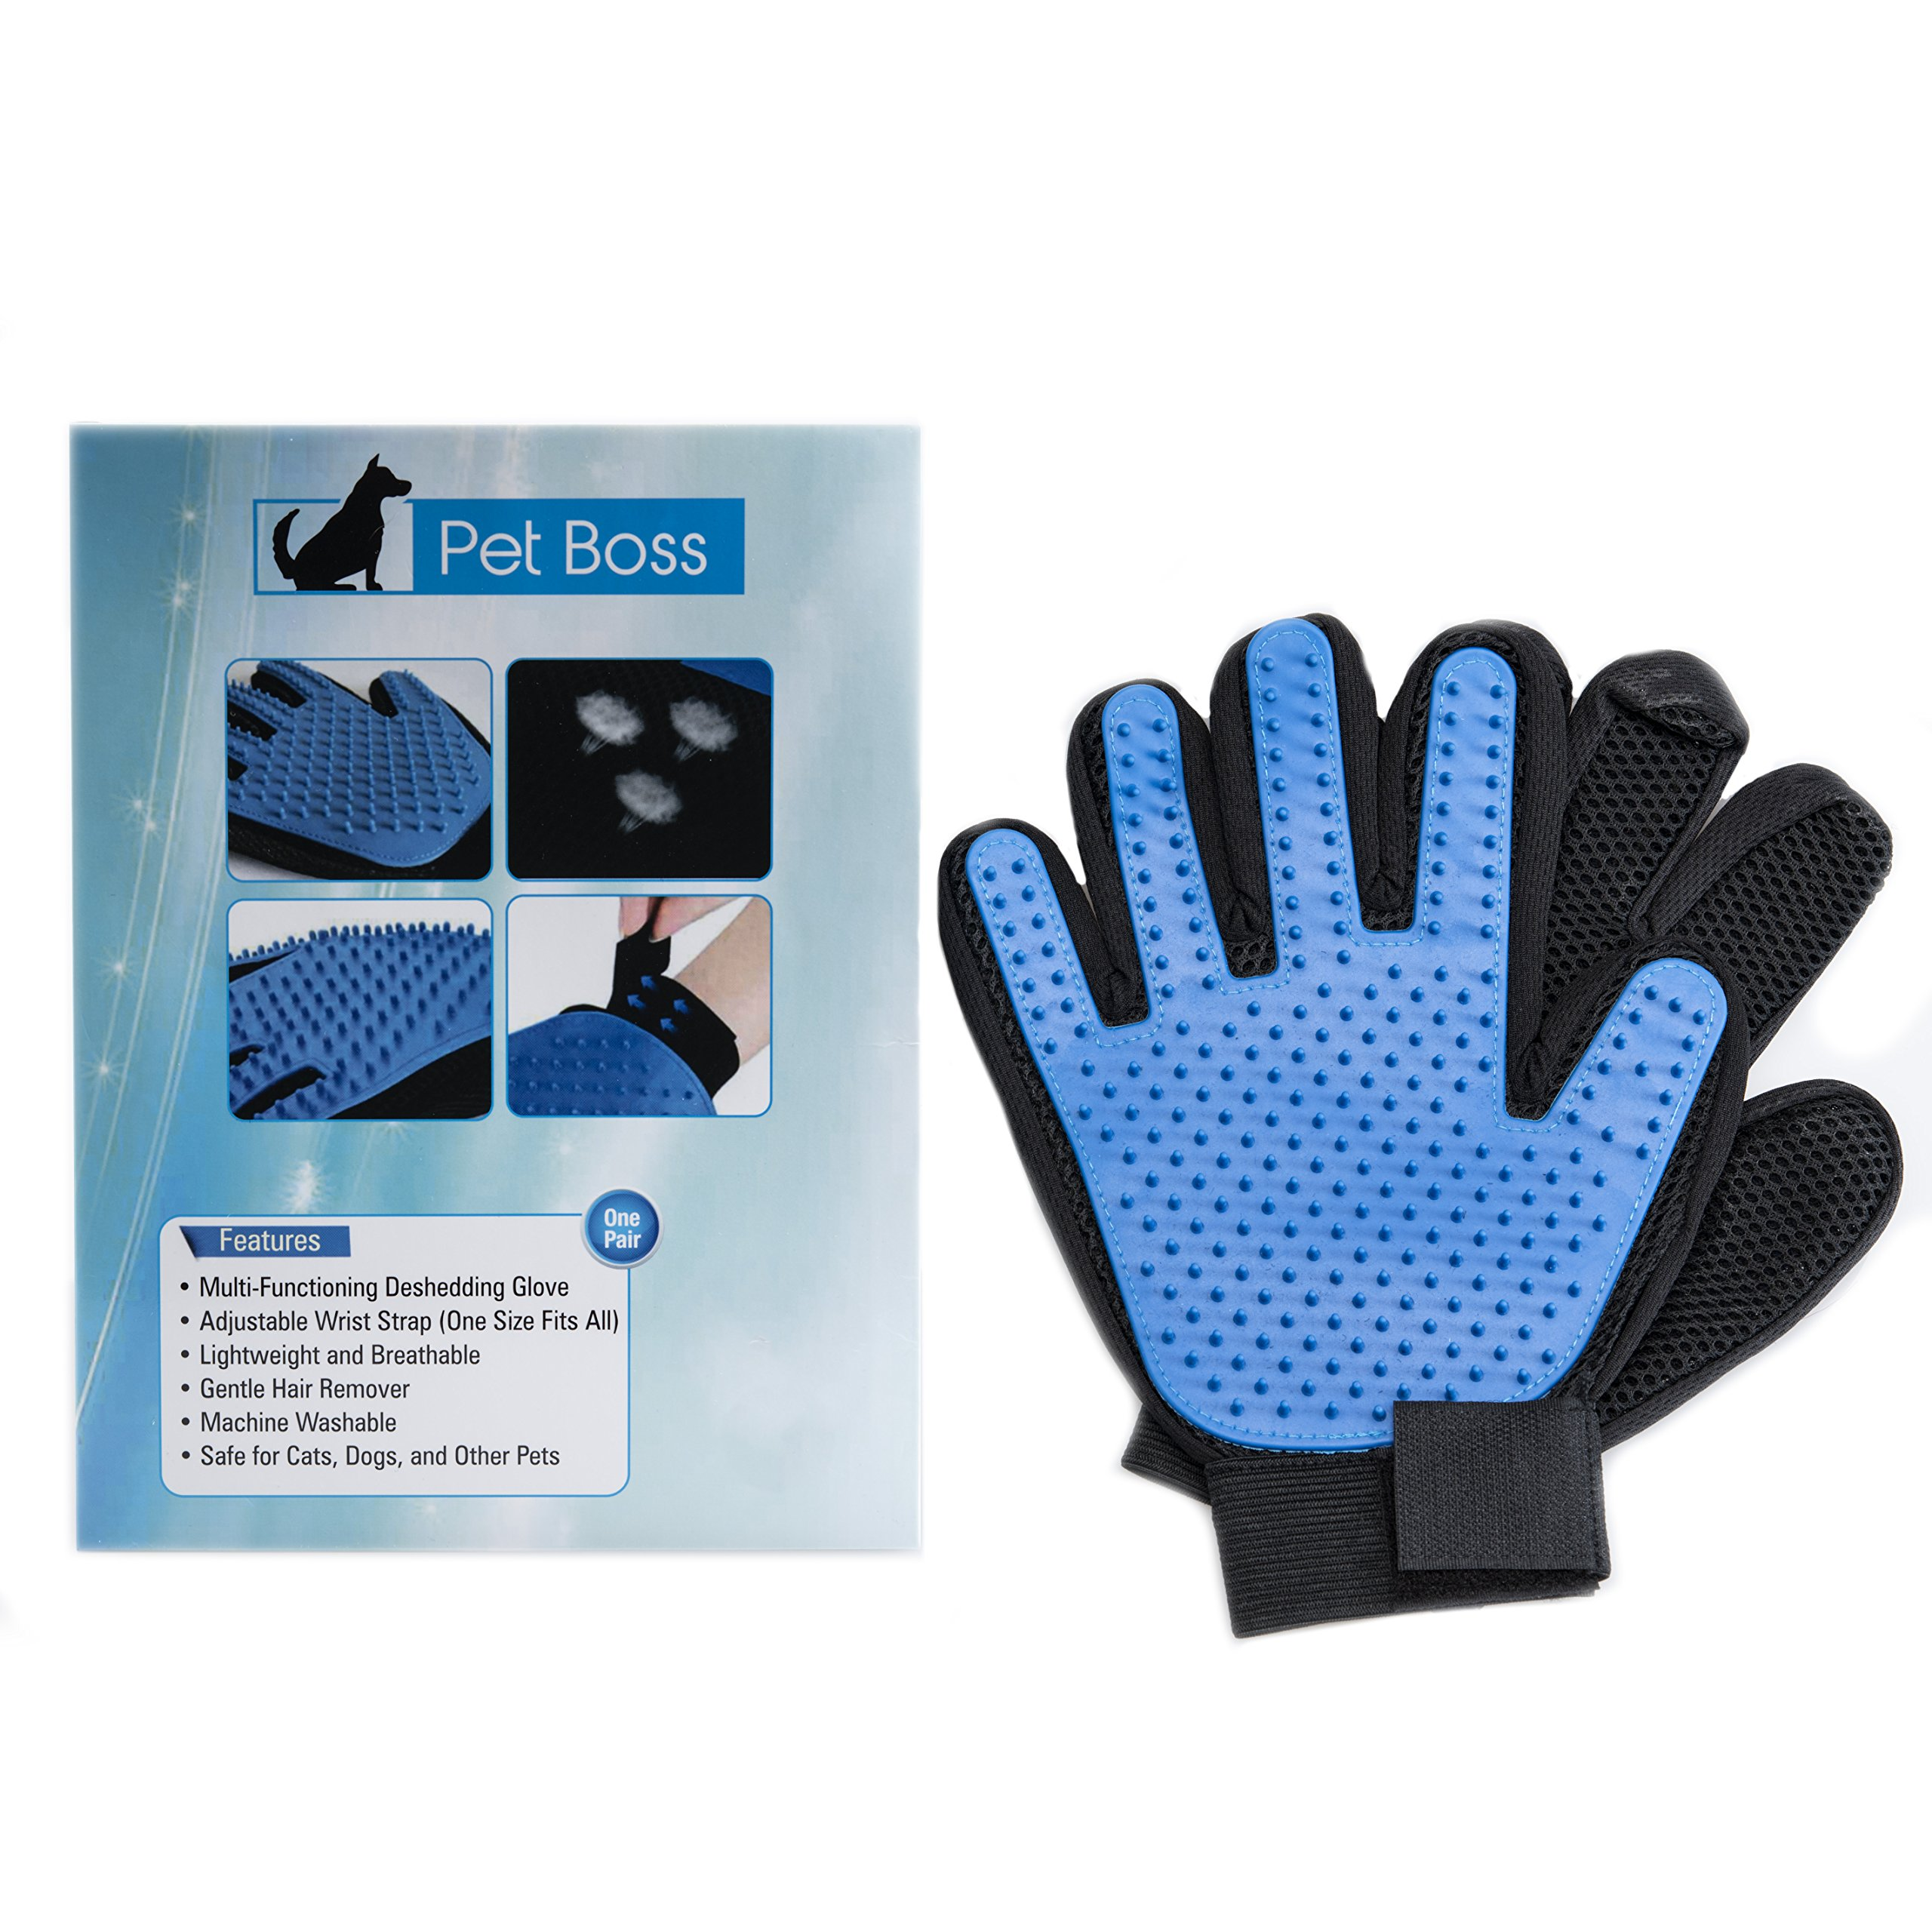 Pet Grooming Glove - Gentle Deshedding Brush Glove - Efficient Pet Hair Remover Mitt - Massage Tool with Enhanced Five Finger Design - Perfect for Dogs & Cats with Long & Short Fur by Pet Boss Co (Image #6)